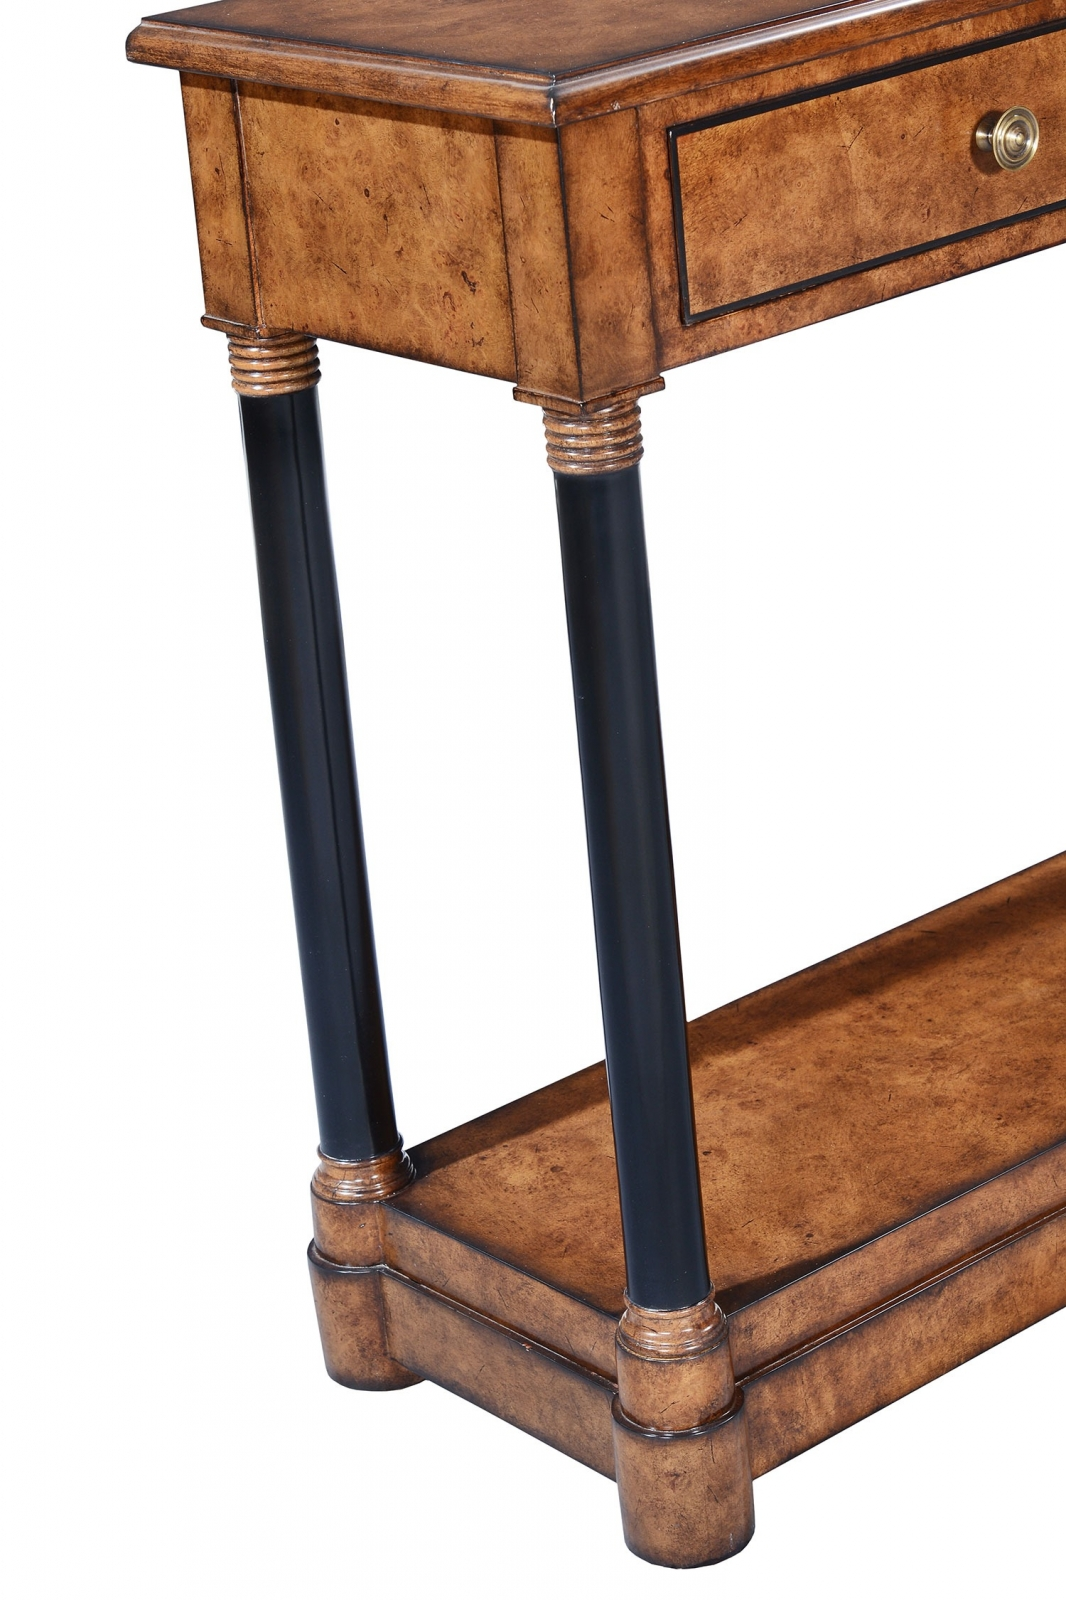 Empire style console table - Burr oak with ebonised legs